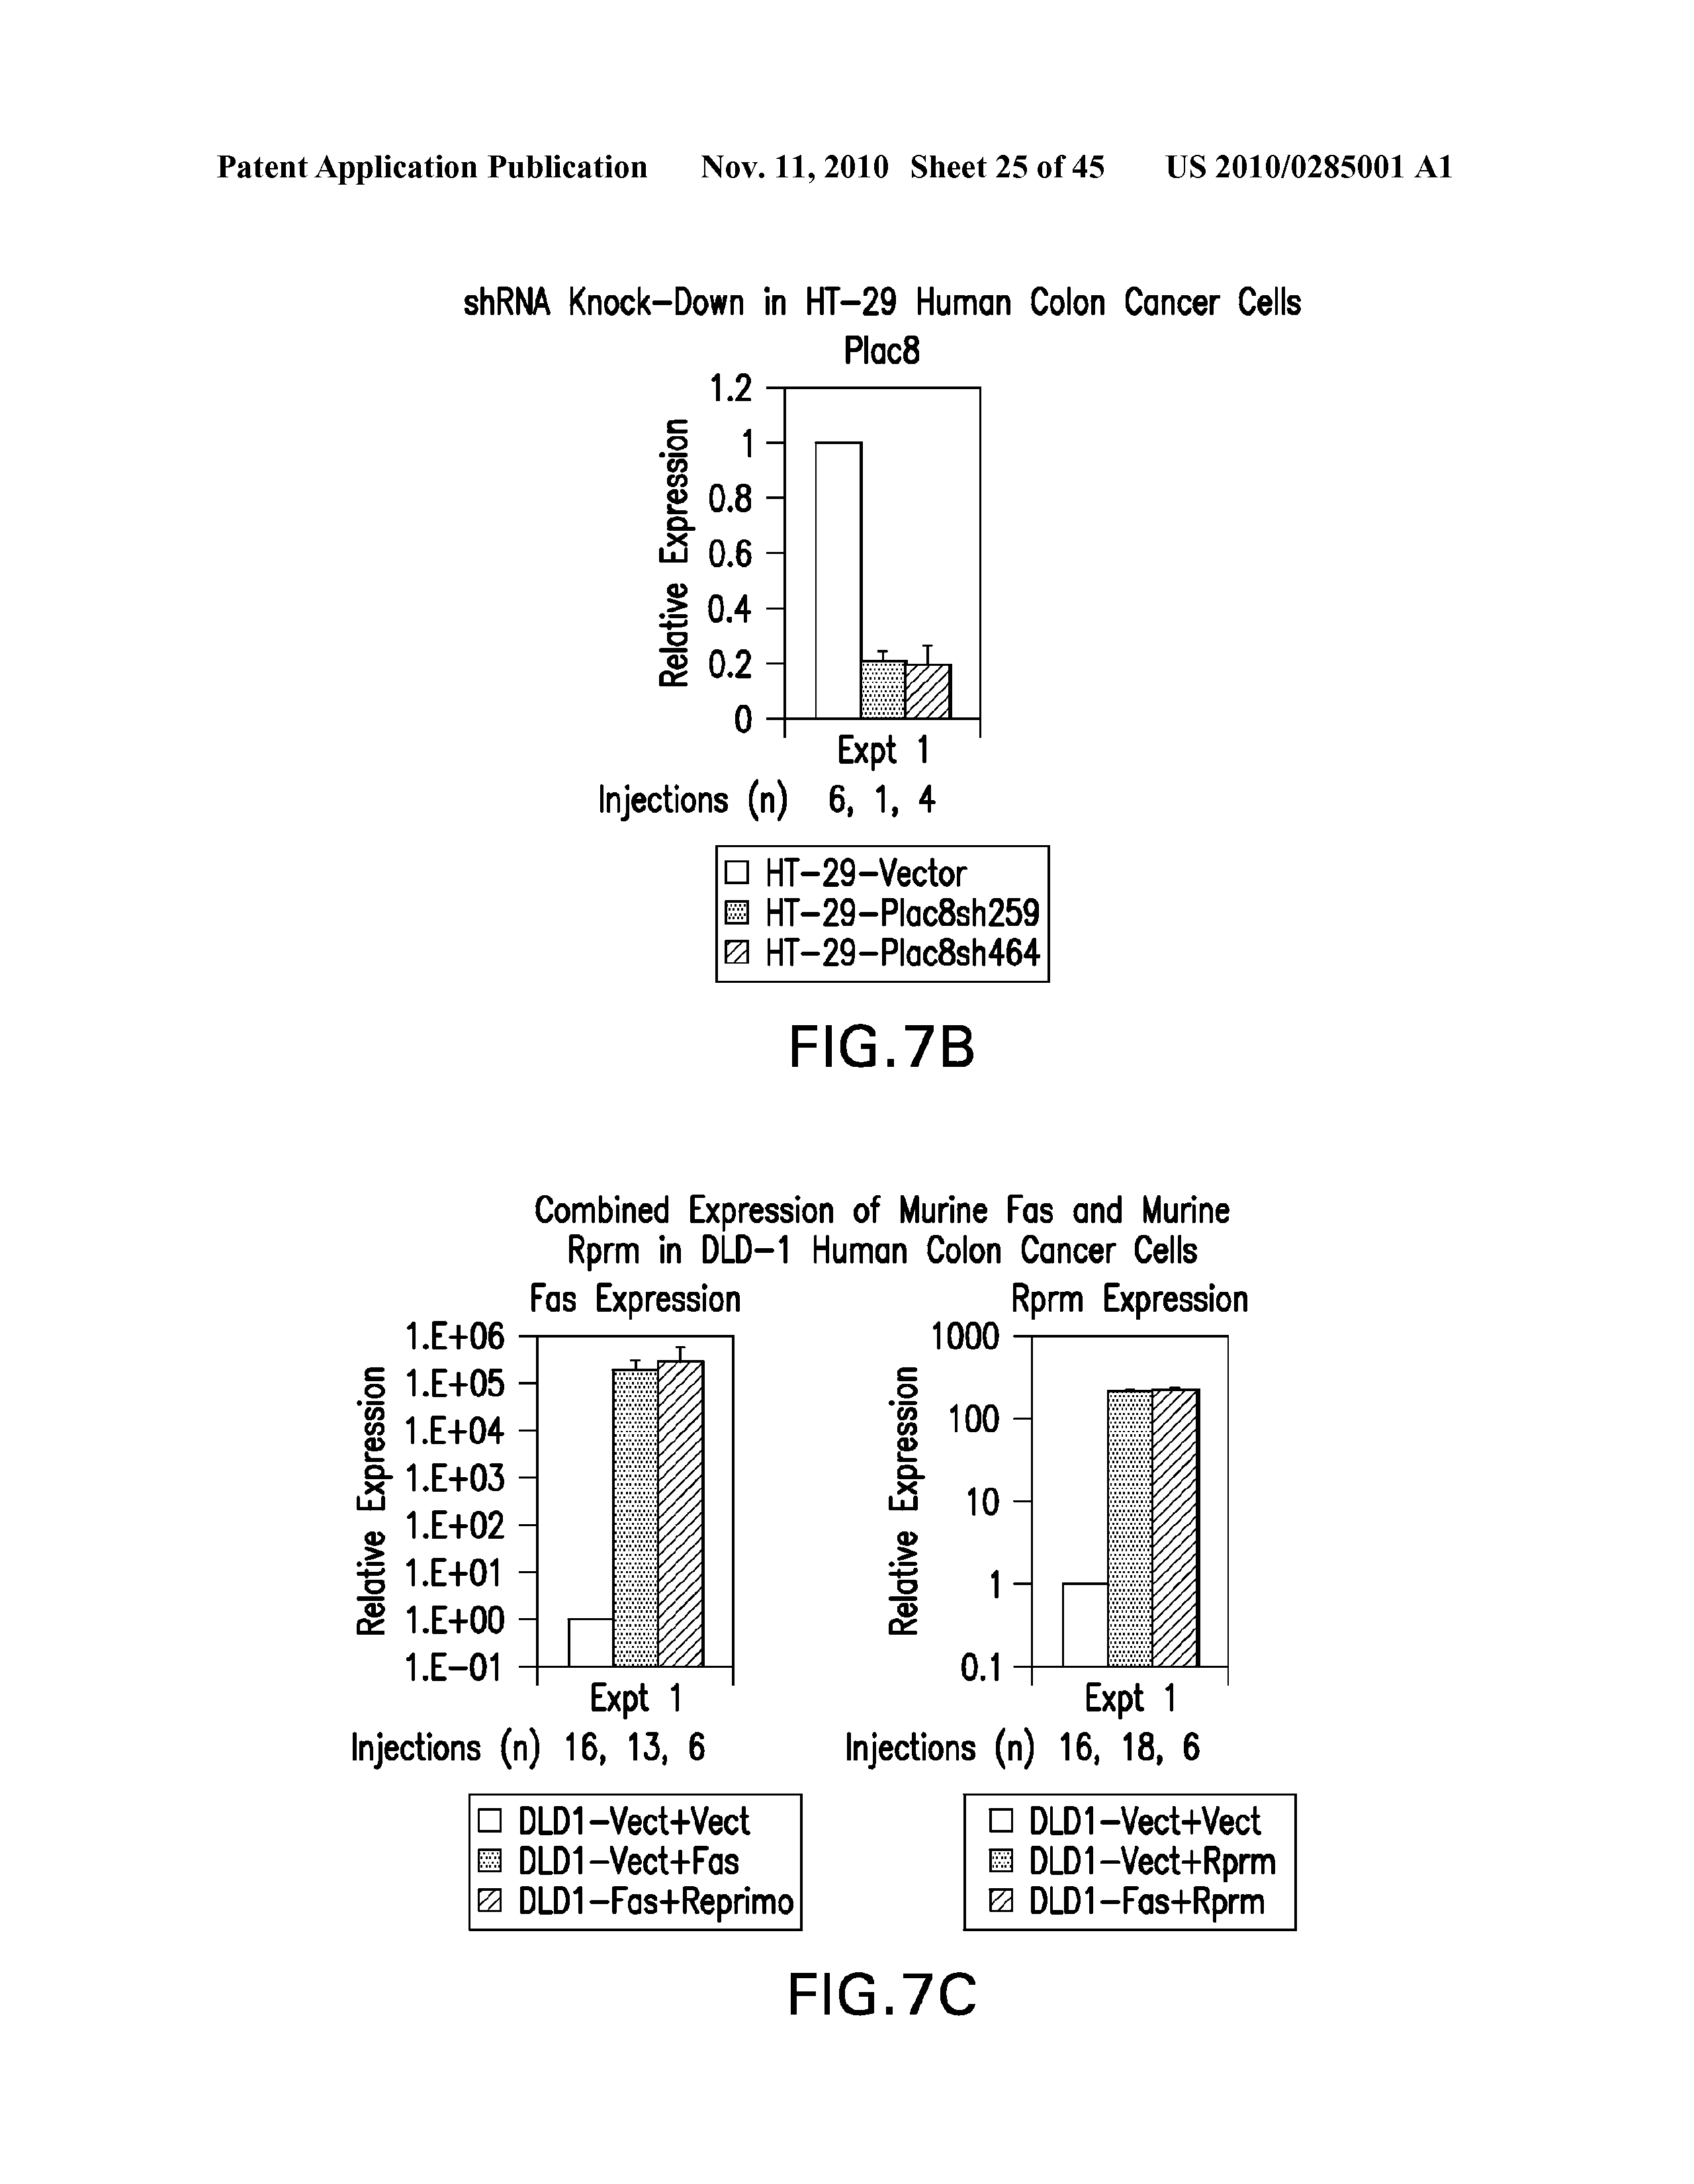 US 2010/0285001 A1 - Method And Compositions Related To Synergistic